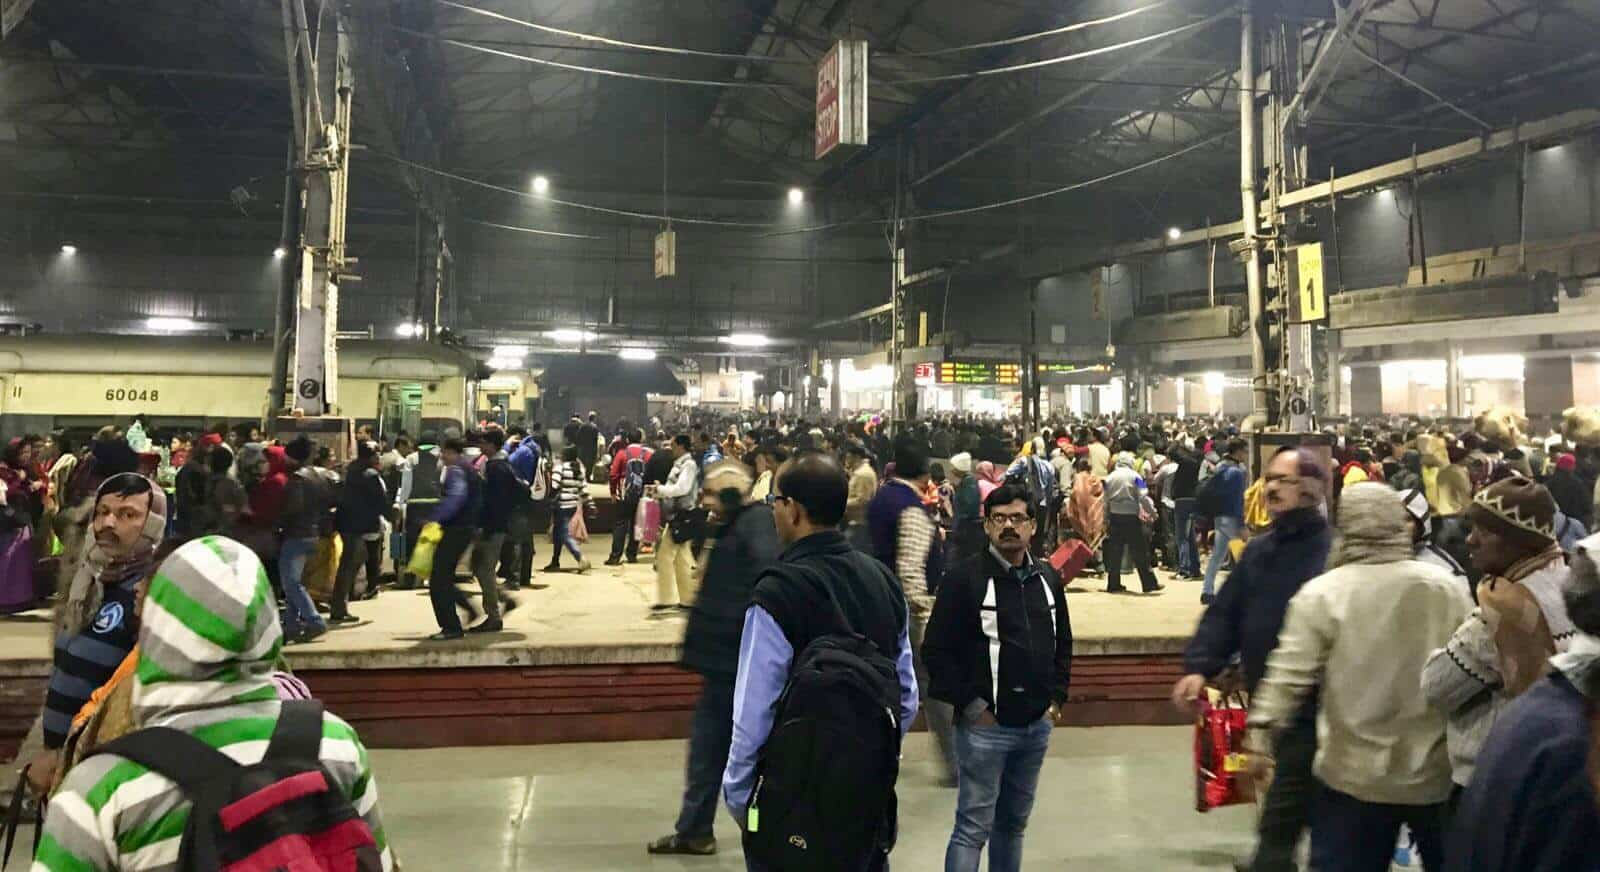 India Kolkata betternotstop crowds trains